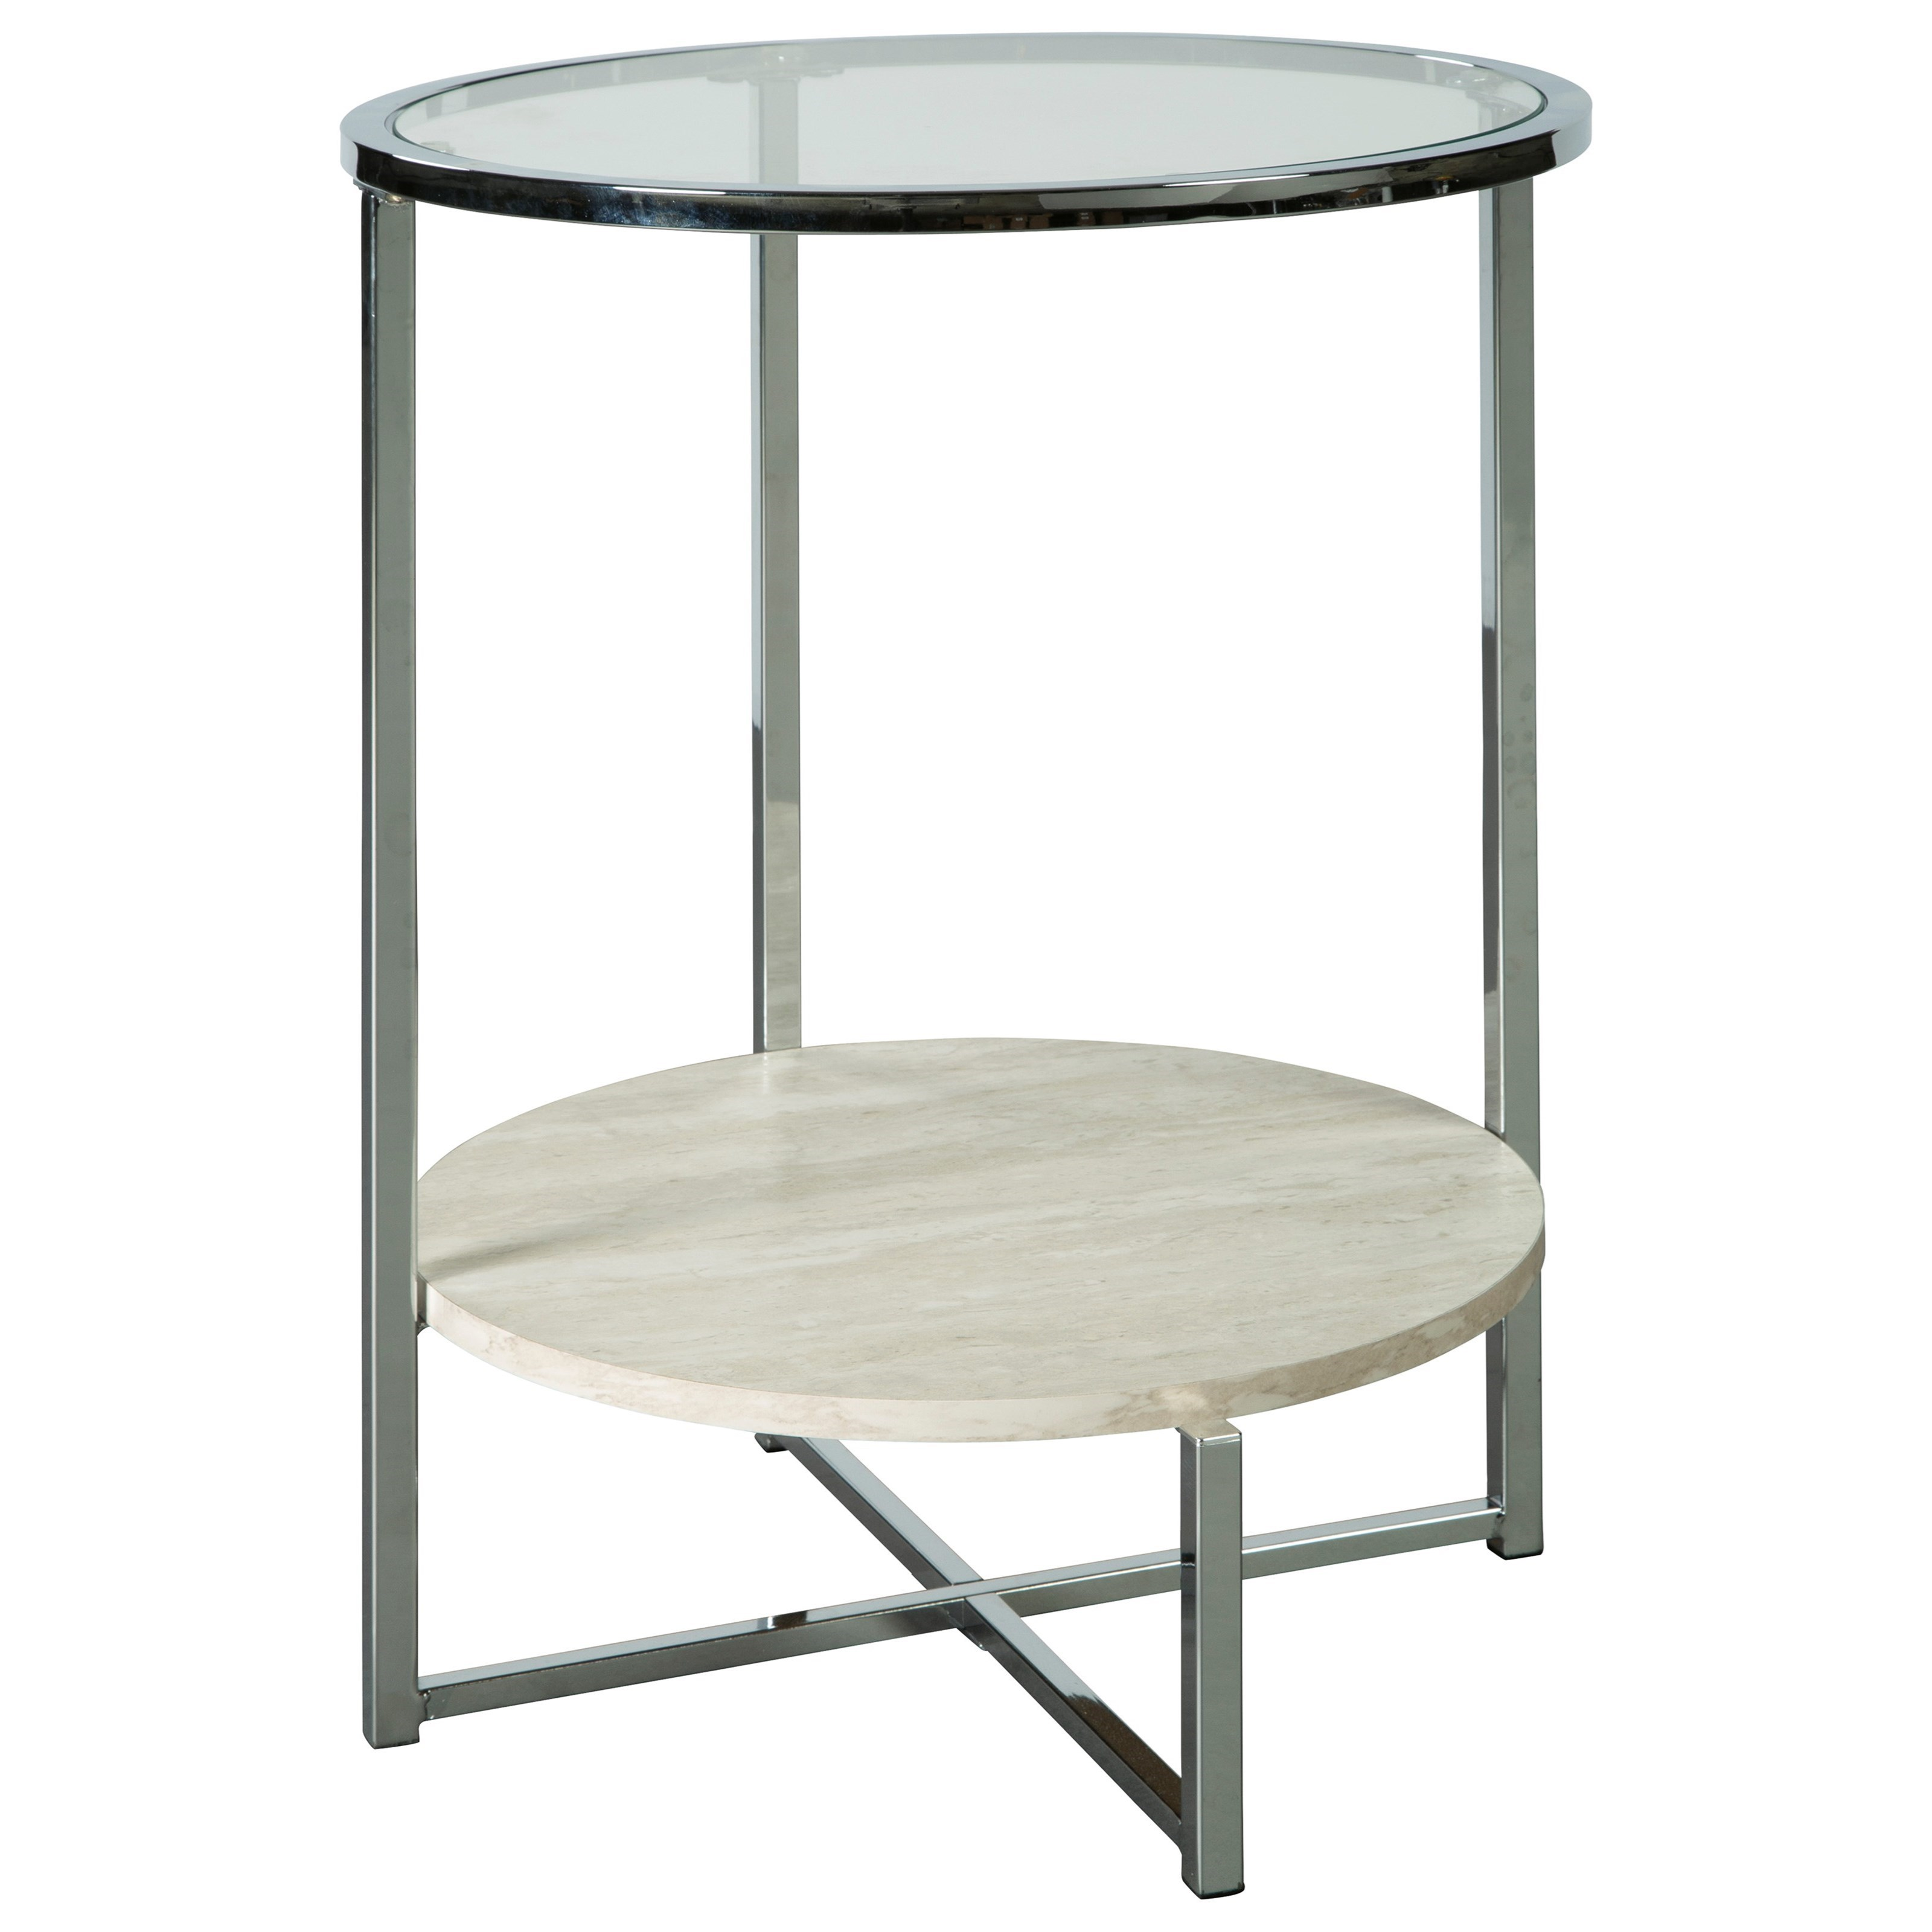 Bodalli Round End Table by Signature Design by Ashley at Sparks HomeStore